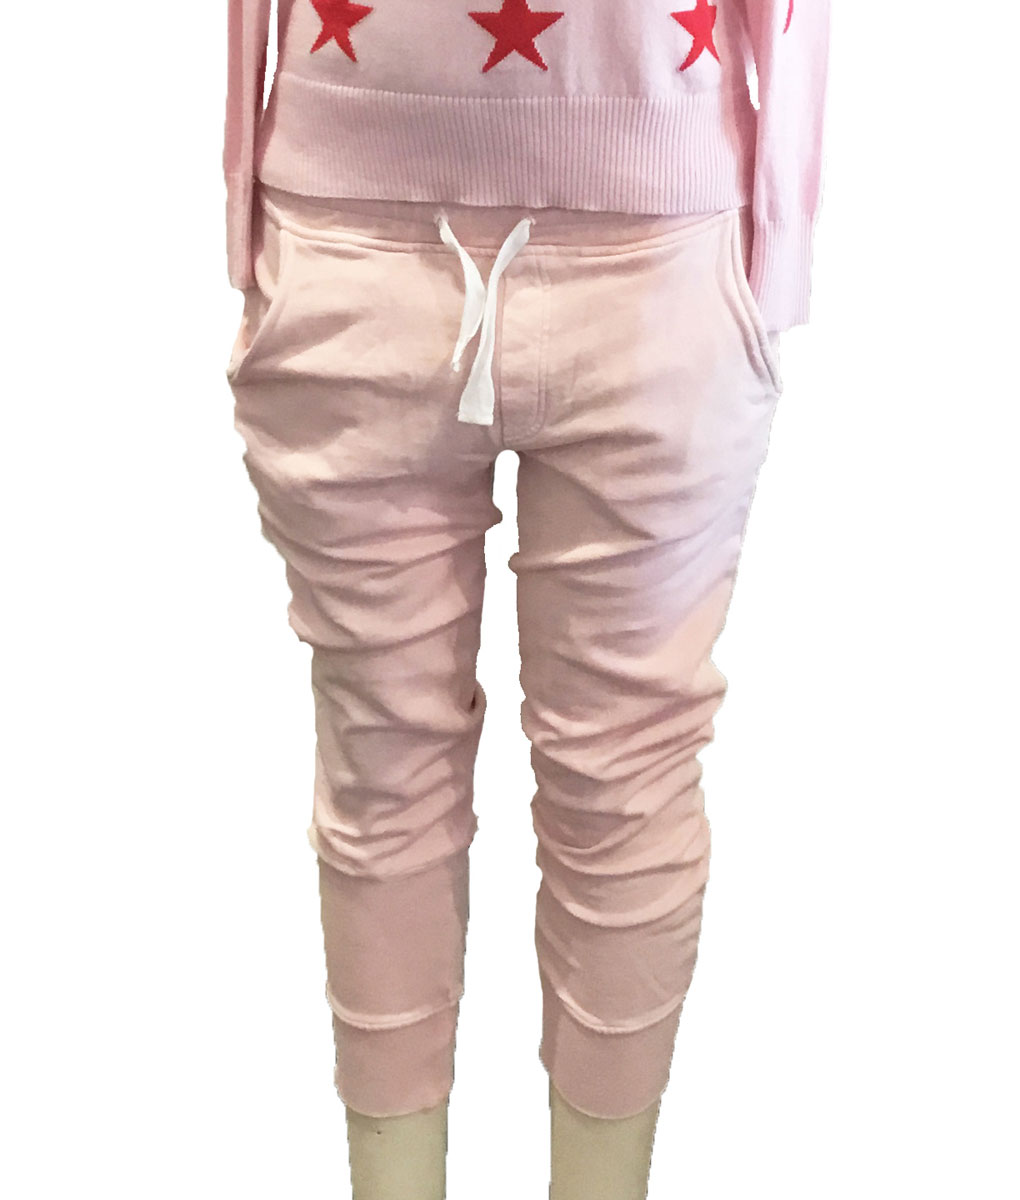 trackpants pink